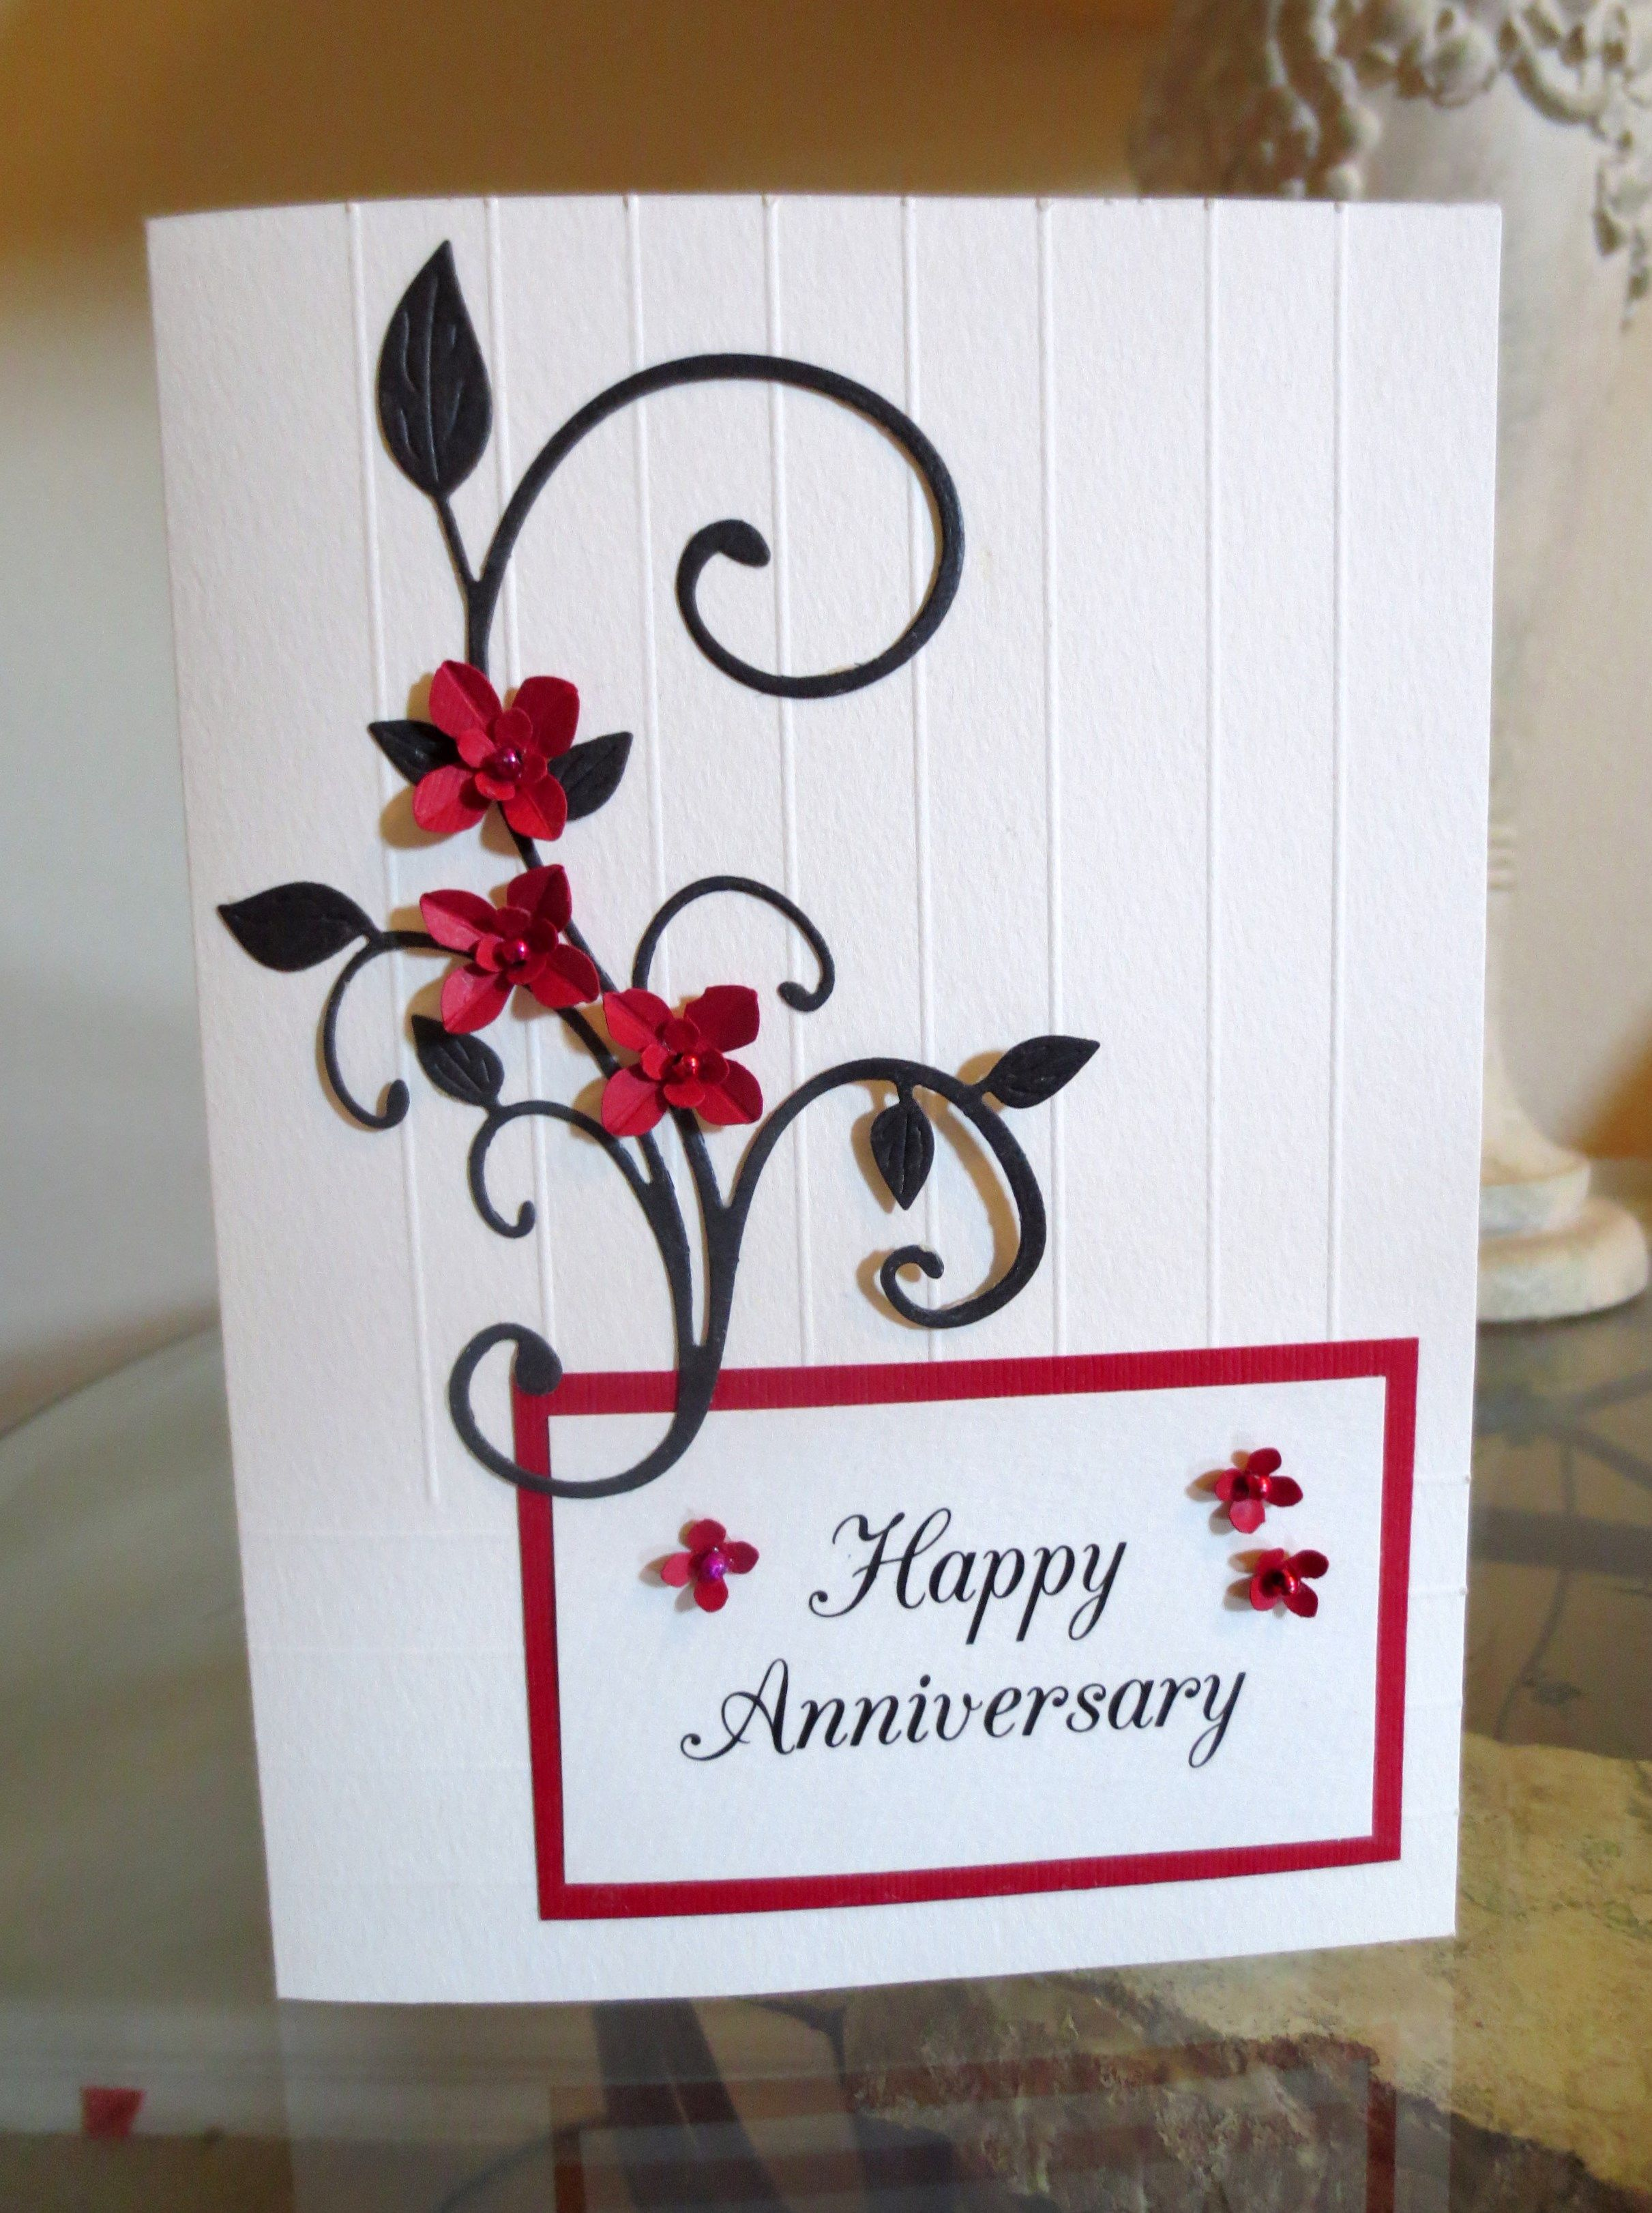 Floral Heart and Horizontal Lines Embossed Anniversary Card for Wife